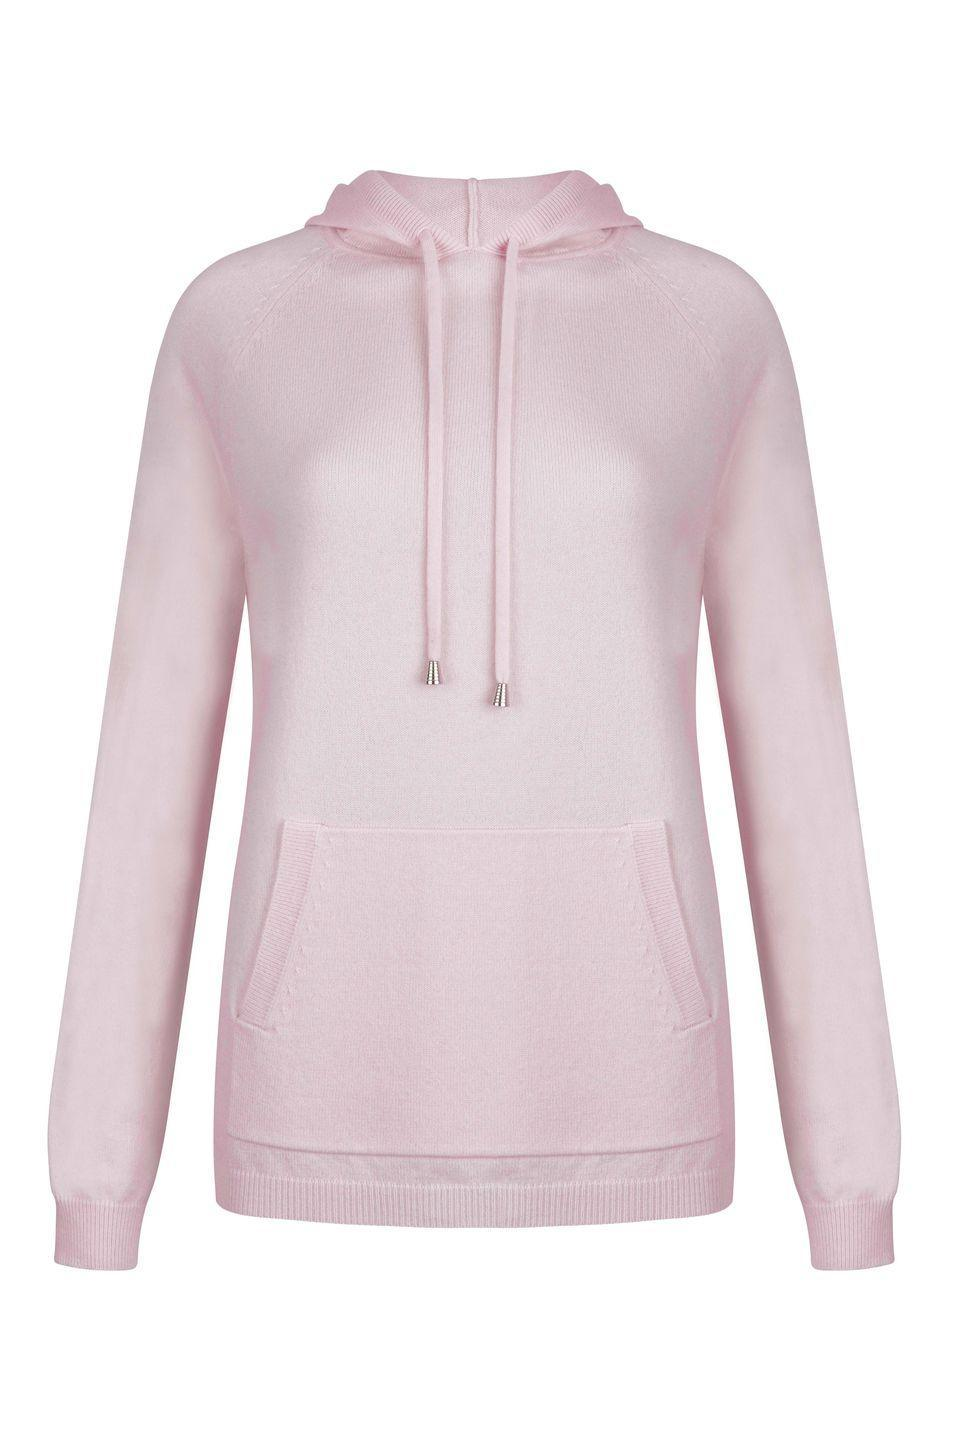 "<p><a class=""link rapid-noclick-resp"" href=""https://www.louisekennedy.com/products/suri-pink-hoodie/"" rel=""nofollow noopener"" target=""_blank"" data-ylk=""slk:SHOP NOW"">SHOP NOW</a></p><p>Another sure upgrade for your loungewear collection is to embrace cashmere. This baby pink hoodie from Louise Kennedy would be a perfect choice, whether you are layering it up or pairing it with the <a href=""https://www.louisekennedy.com/products/serena-knit-trousers-pink/"" rel=""nofollow noopener"" target=""_blank"" data-ylk=""slk:matching joggers"" class=""link rapid-noclick-resp"">matching joggers</a> for a day working from home.</p><p>Hoodie, £795, Louise Kennedy</p>"